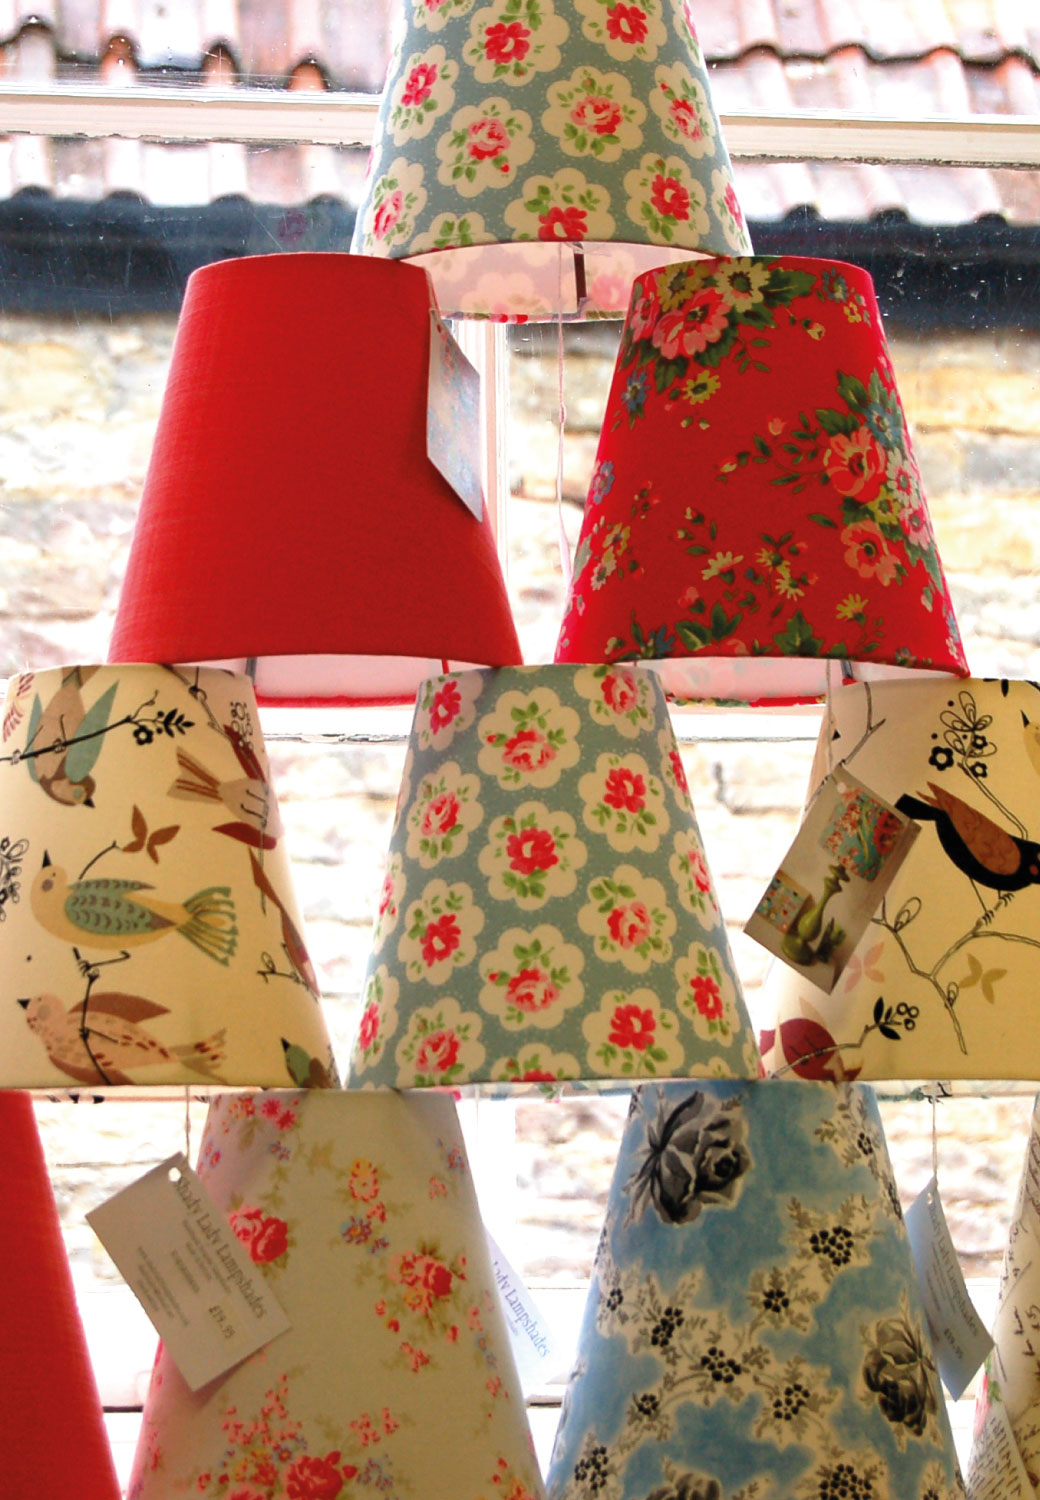 Bespoke Lampshades Uk Custom Made Bespoke Retro